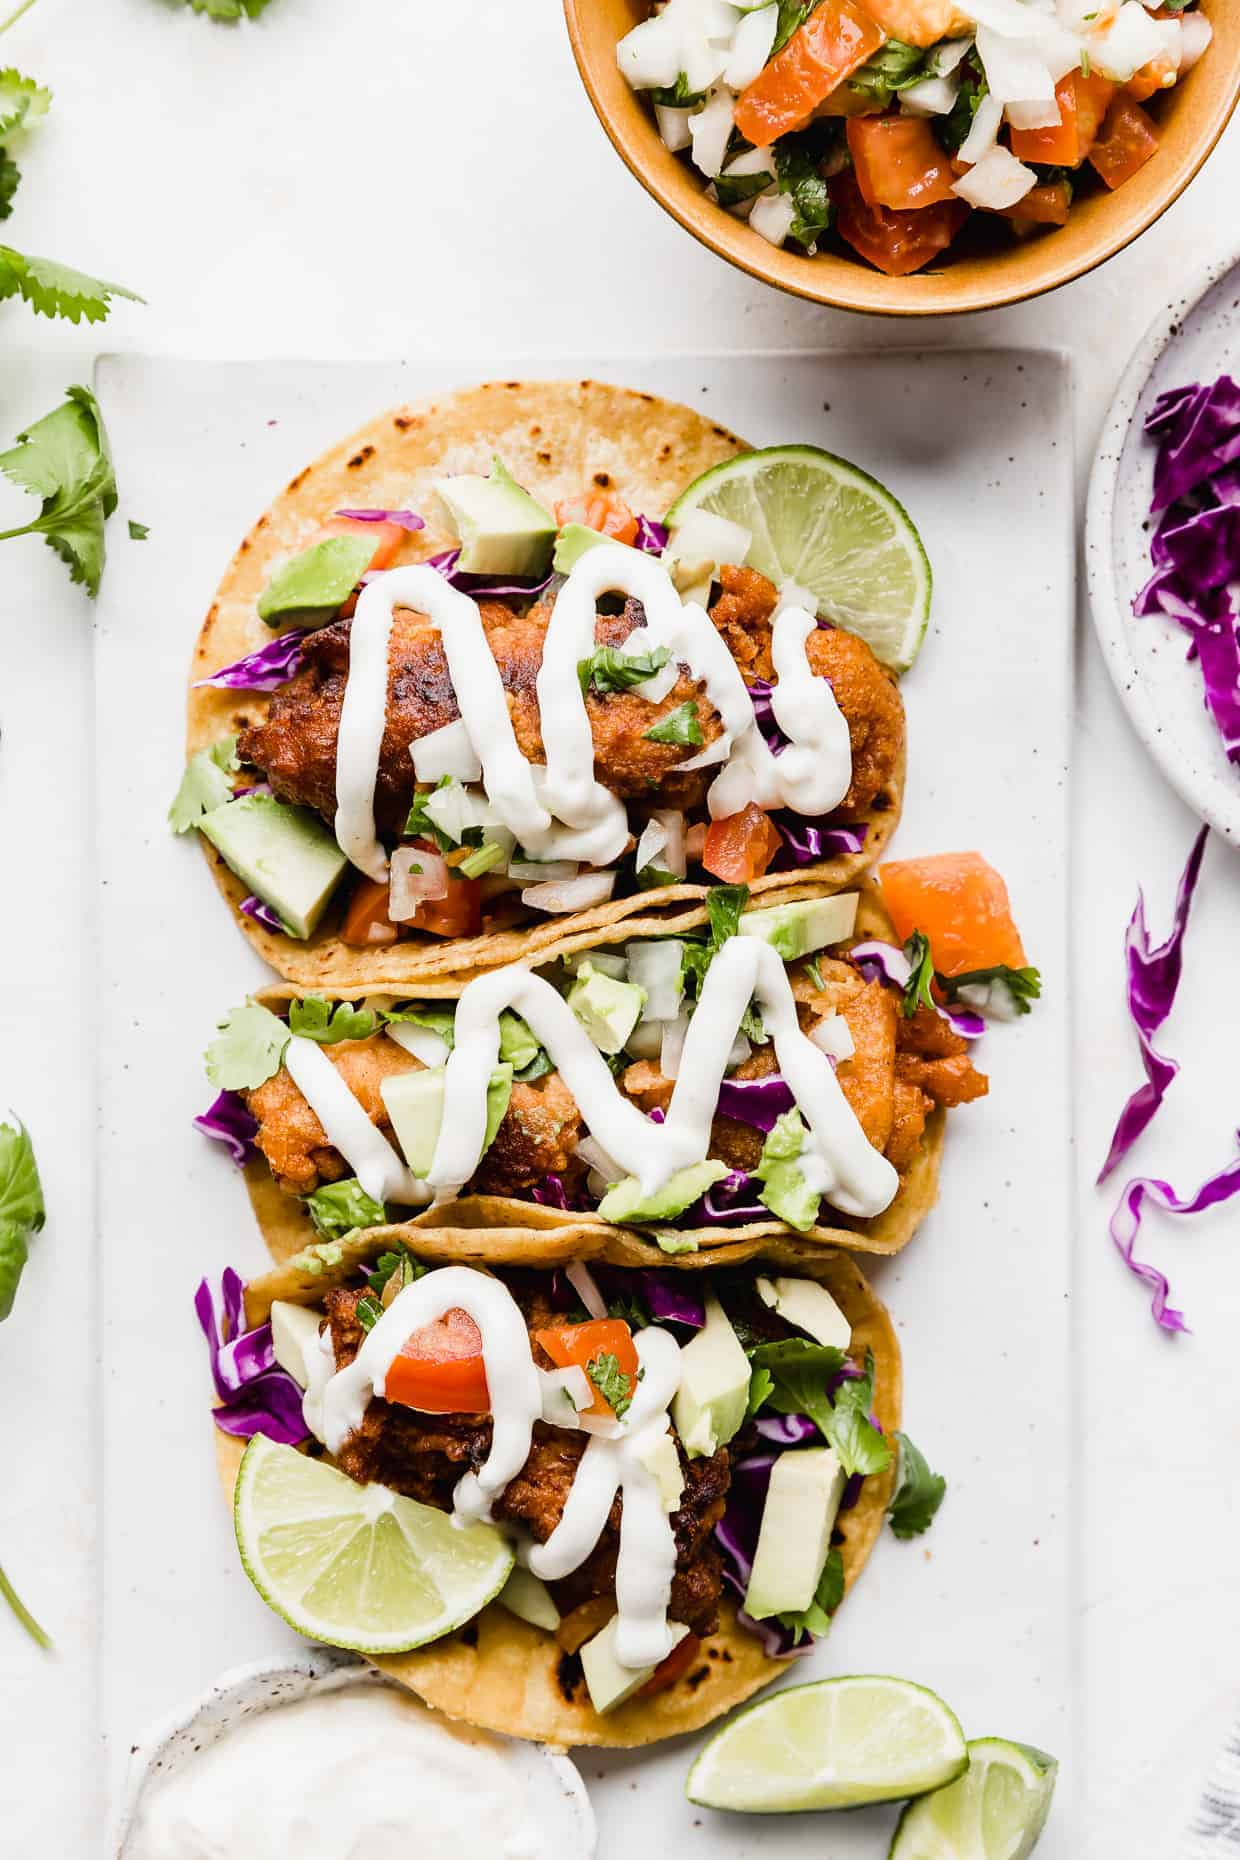 Three Baja Fish Tacos on a white plate topped with lime, avocado, white sauce, and cabbage.